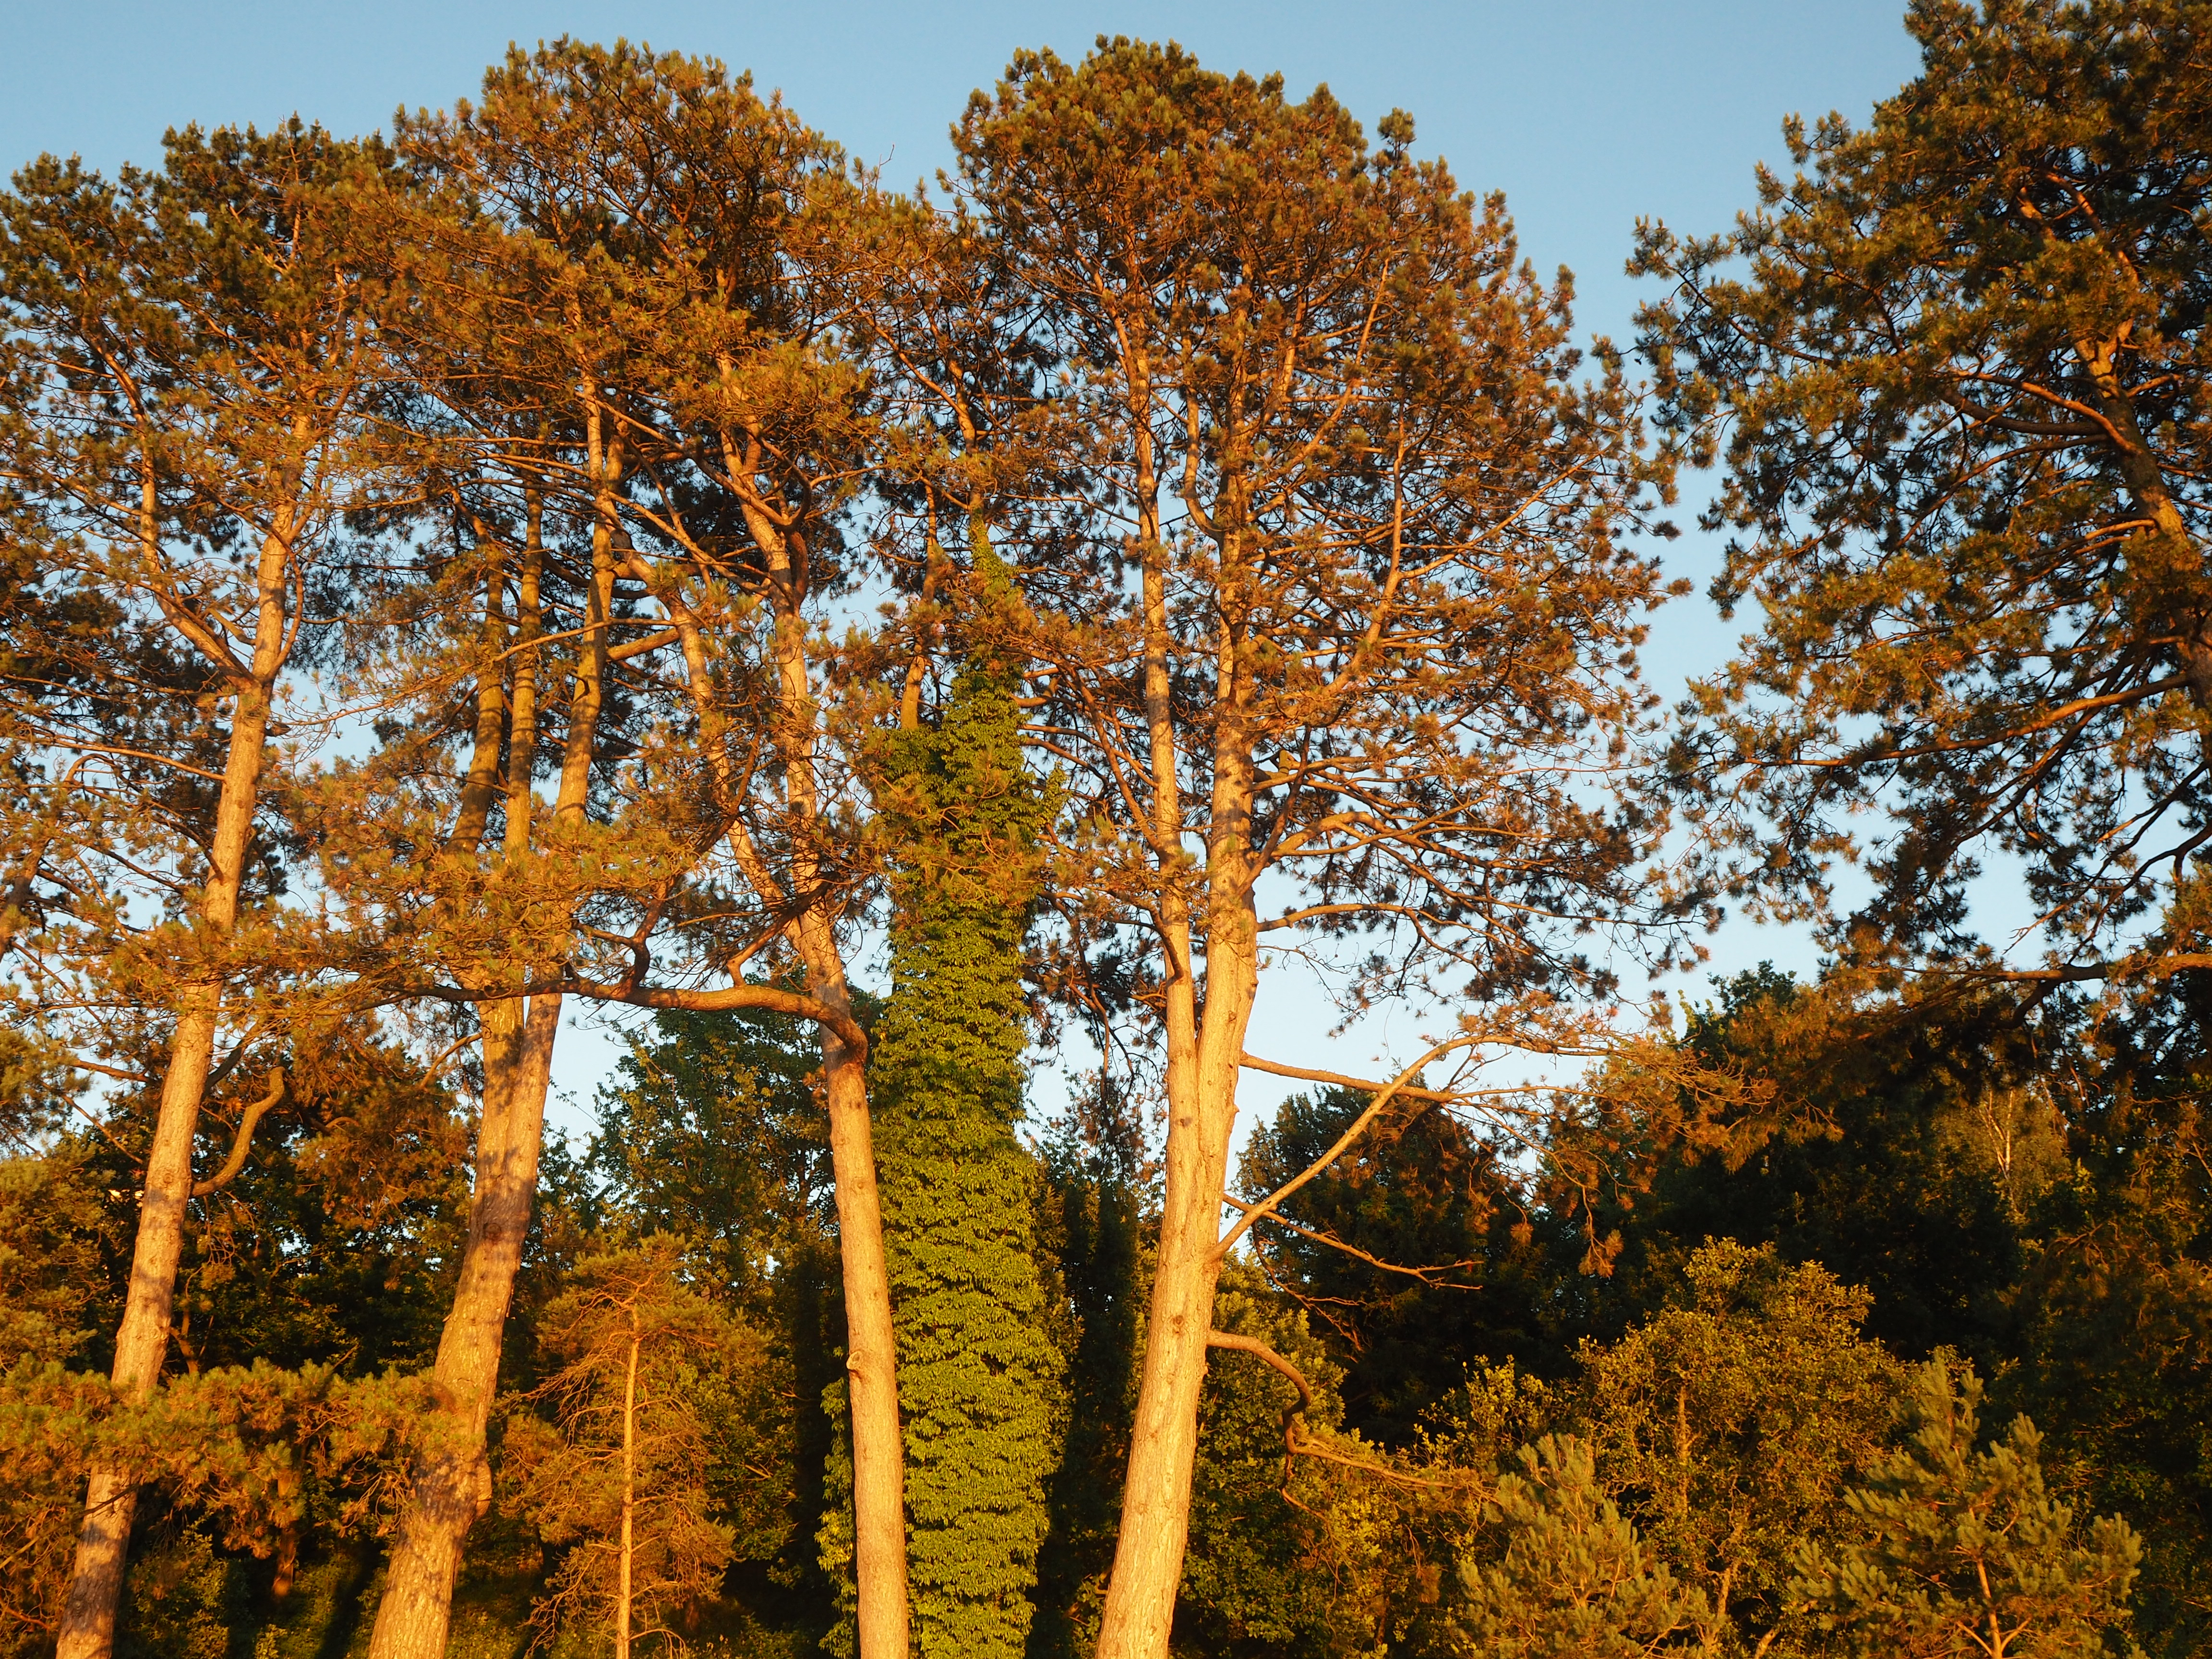 Trees catching the light just before sunset